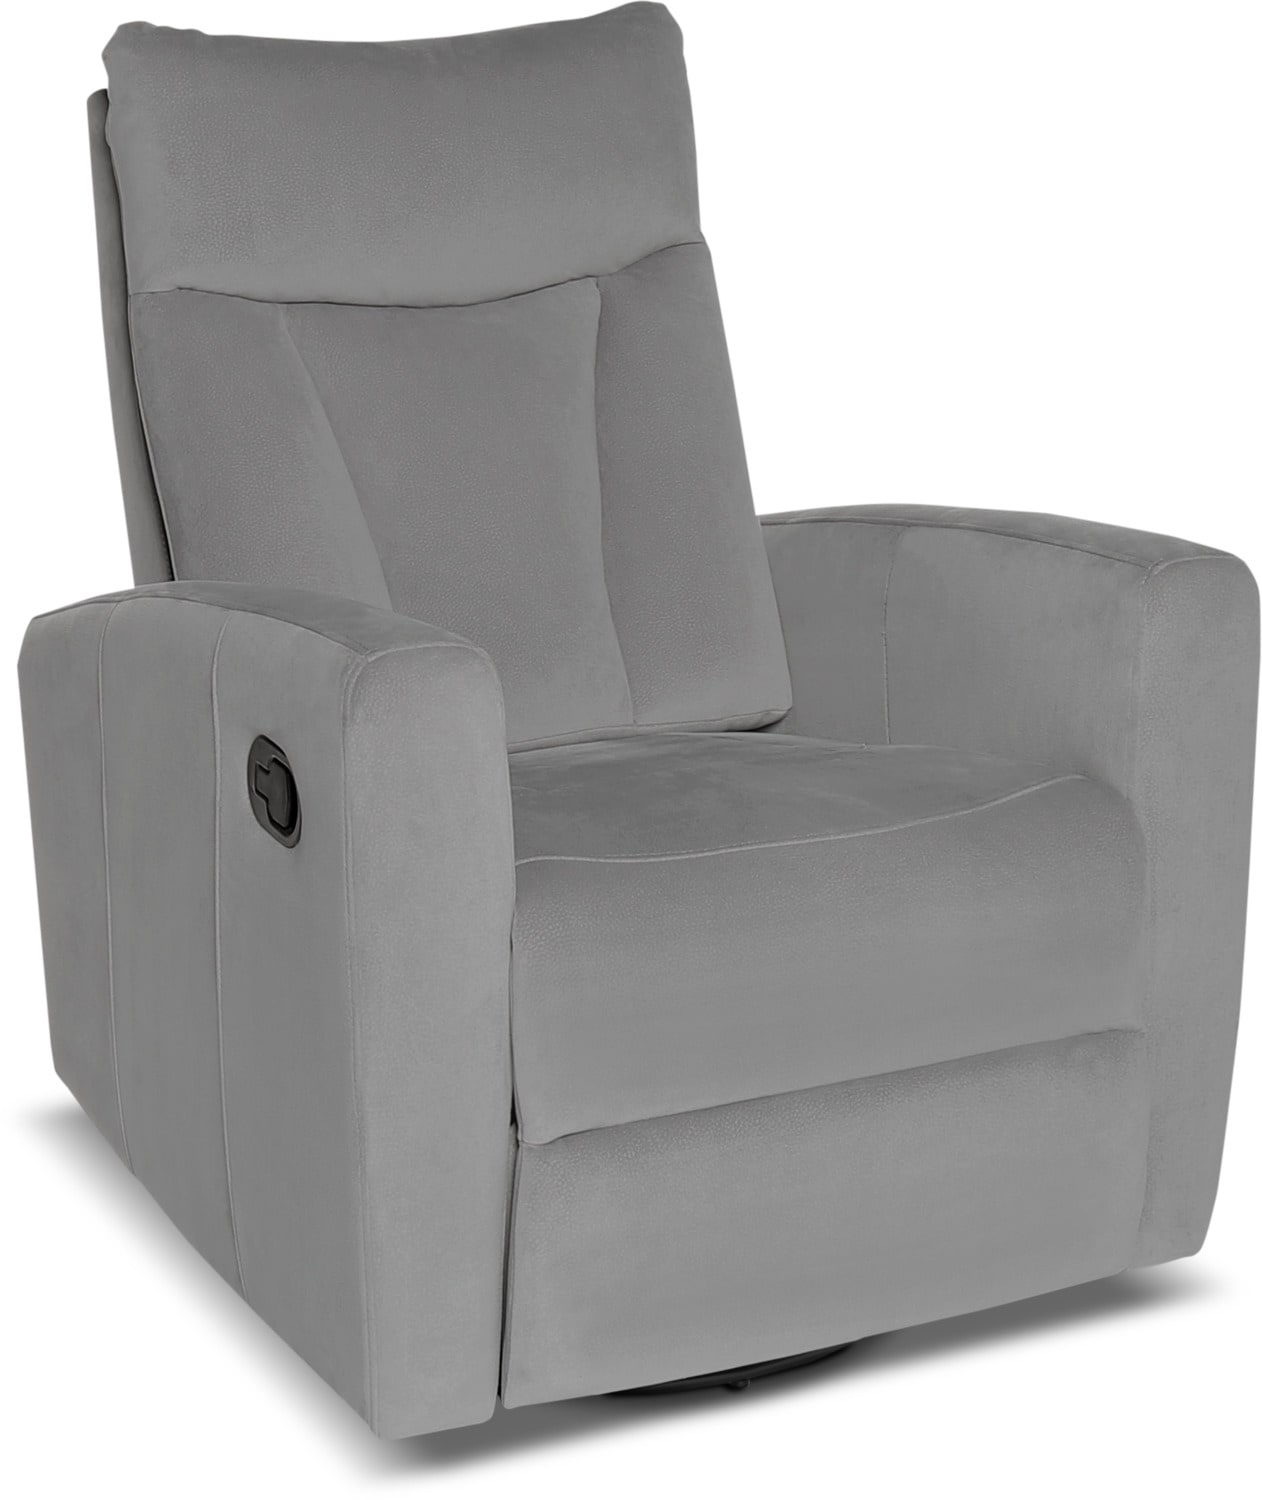 Mandy Microsuede Reclining Chair – Grey